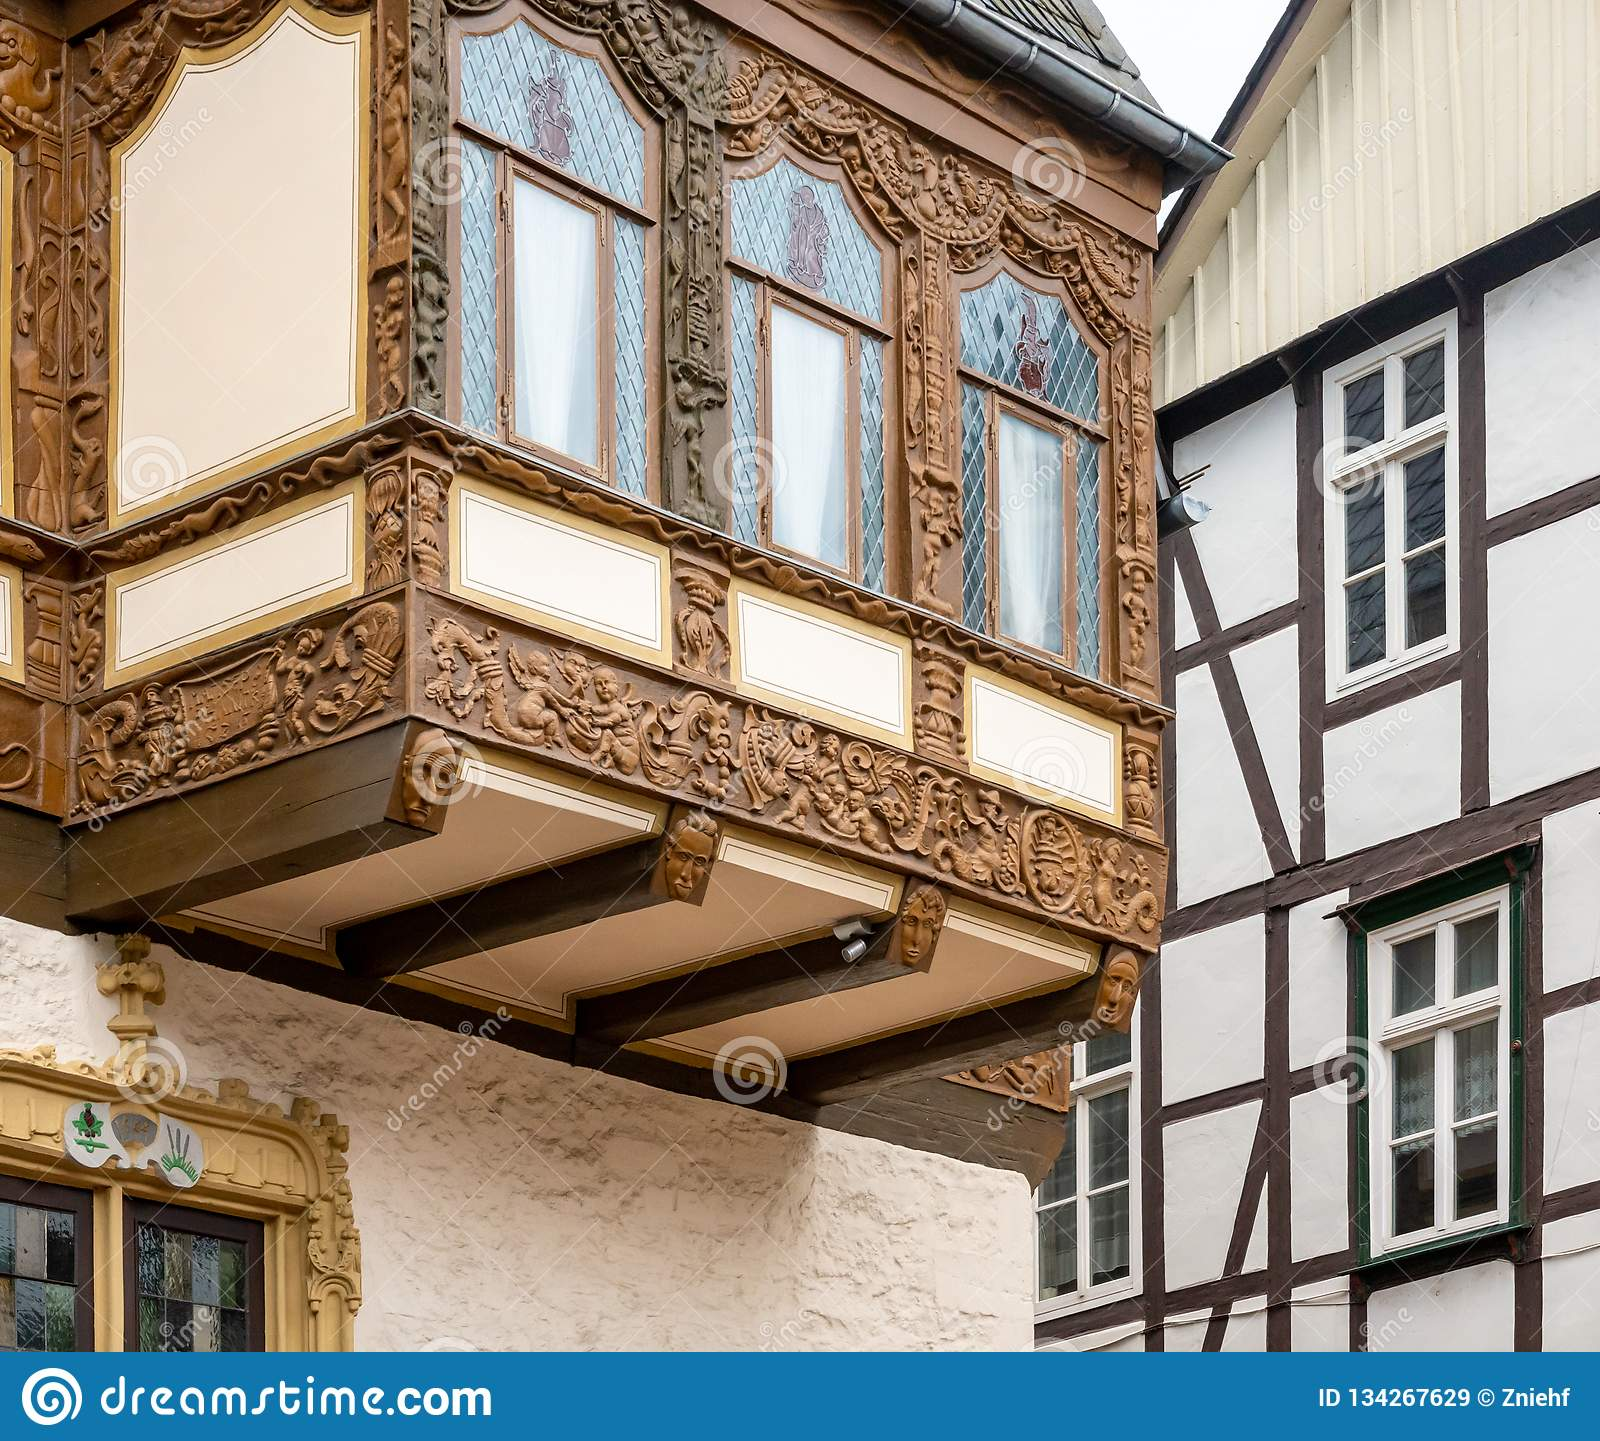 Simple half-timbered façade in the background and richly carved half-timbered house on an oriel in the old town